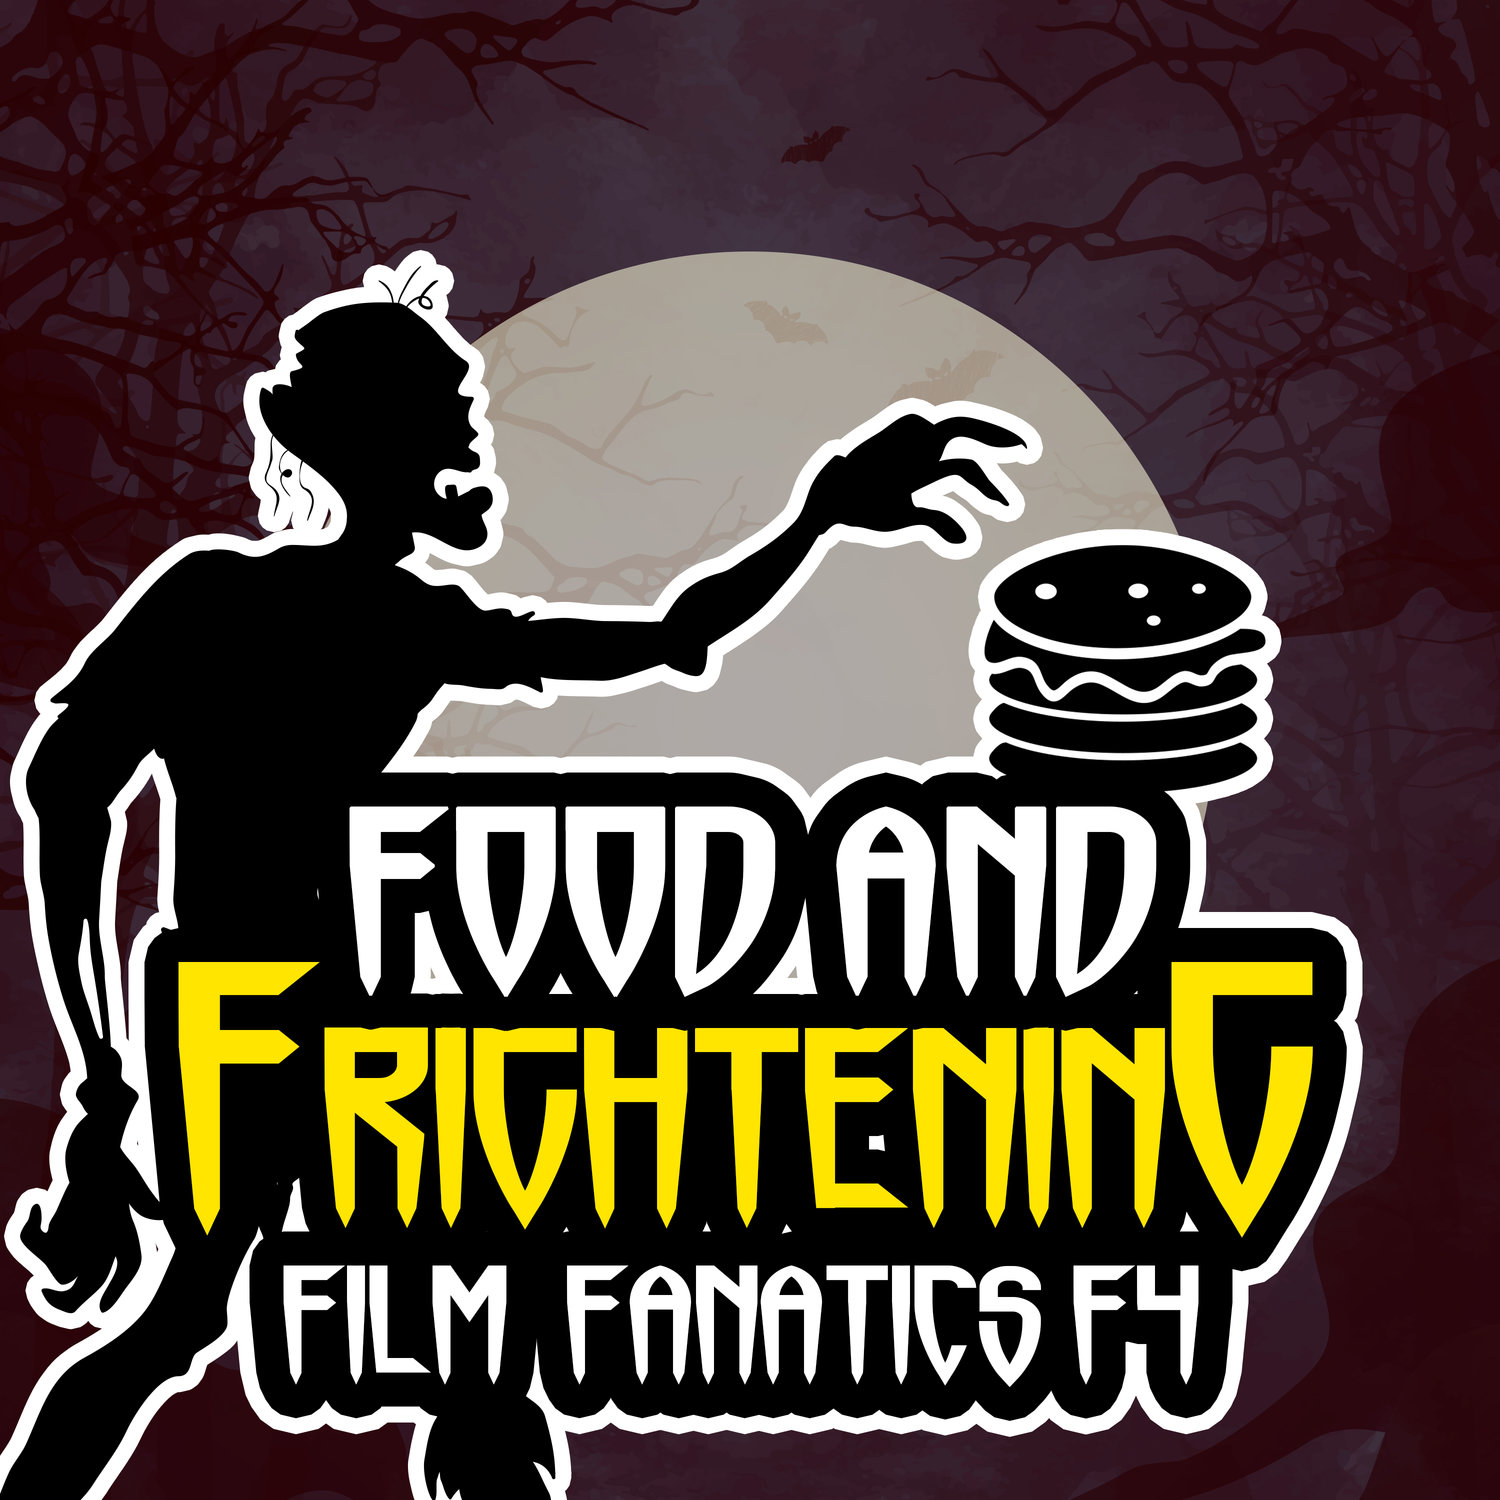 Podcast: Food & Frightening Film Fanatics